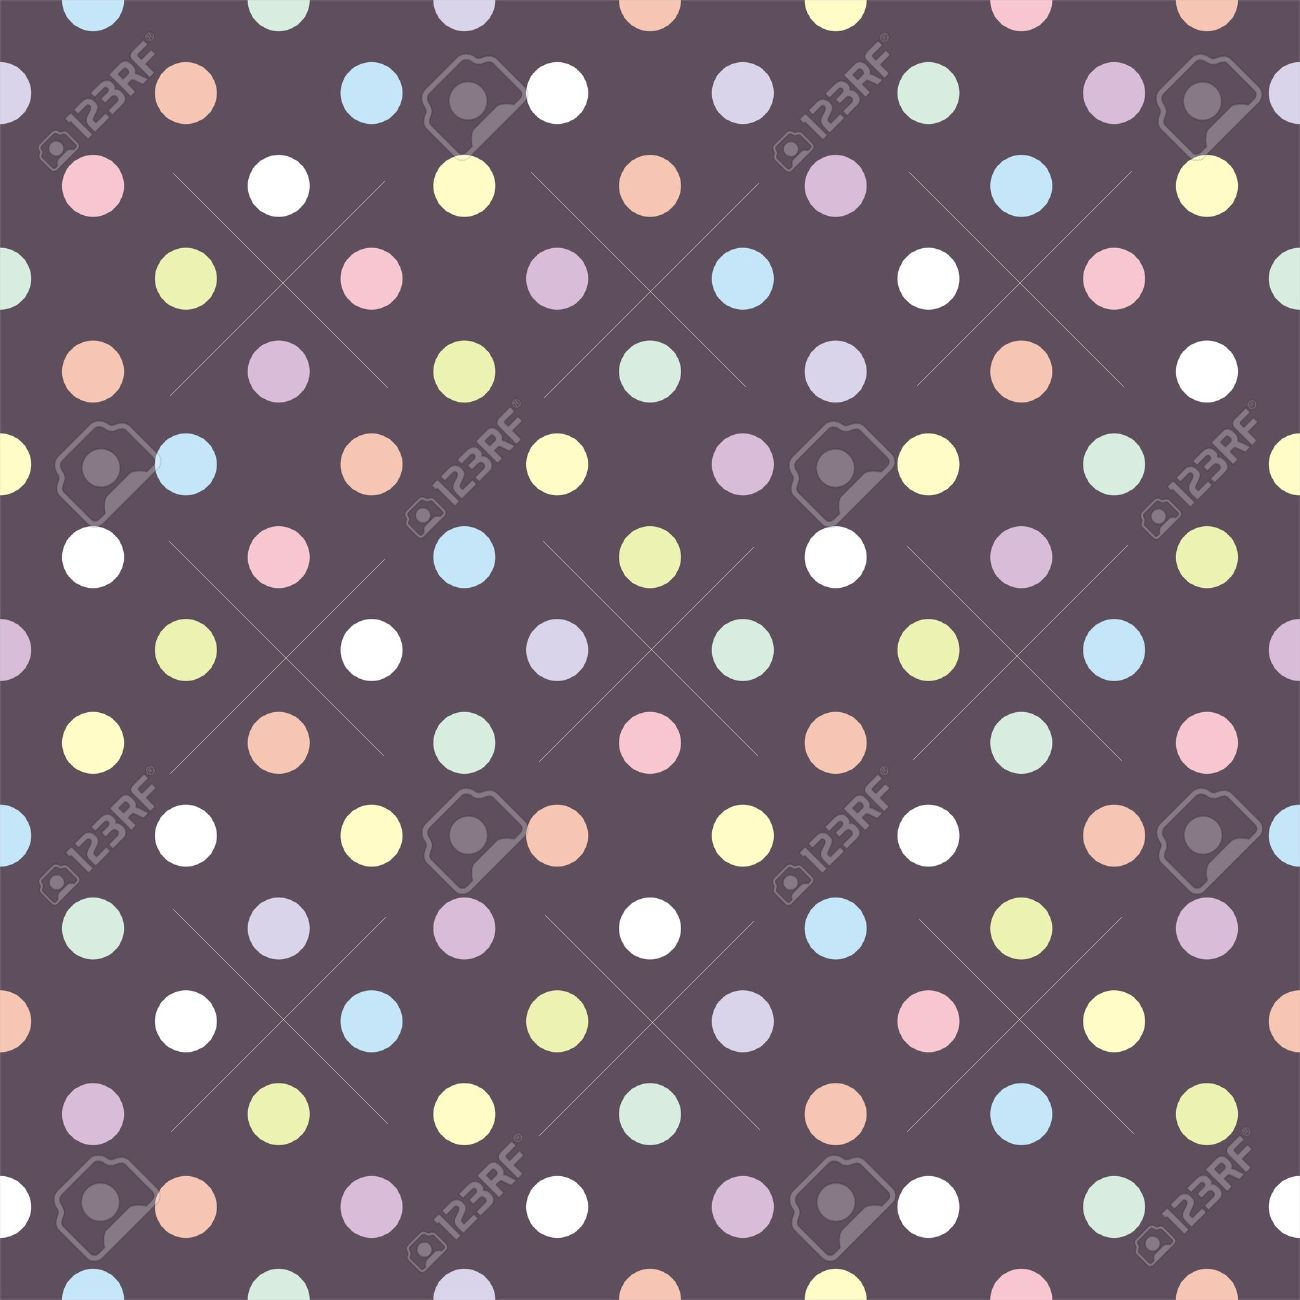 Colorful pastel polka dots on dark brown background Stock Vector - 15496786